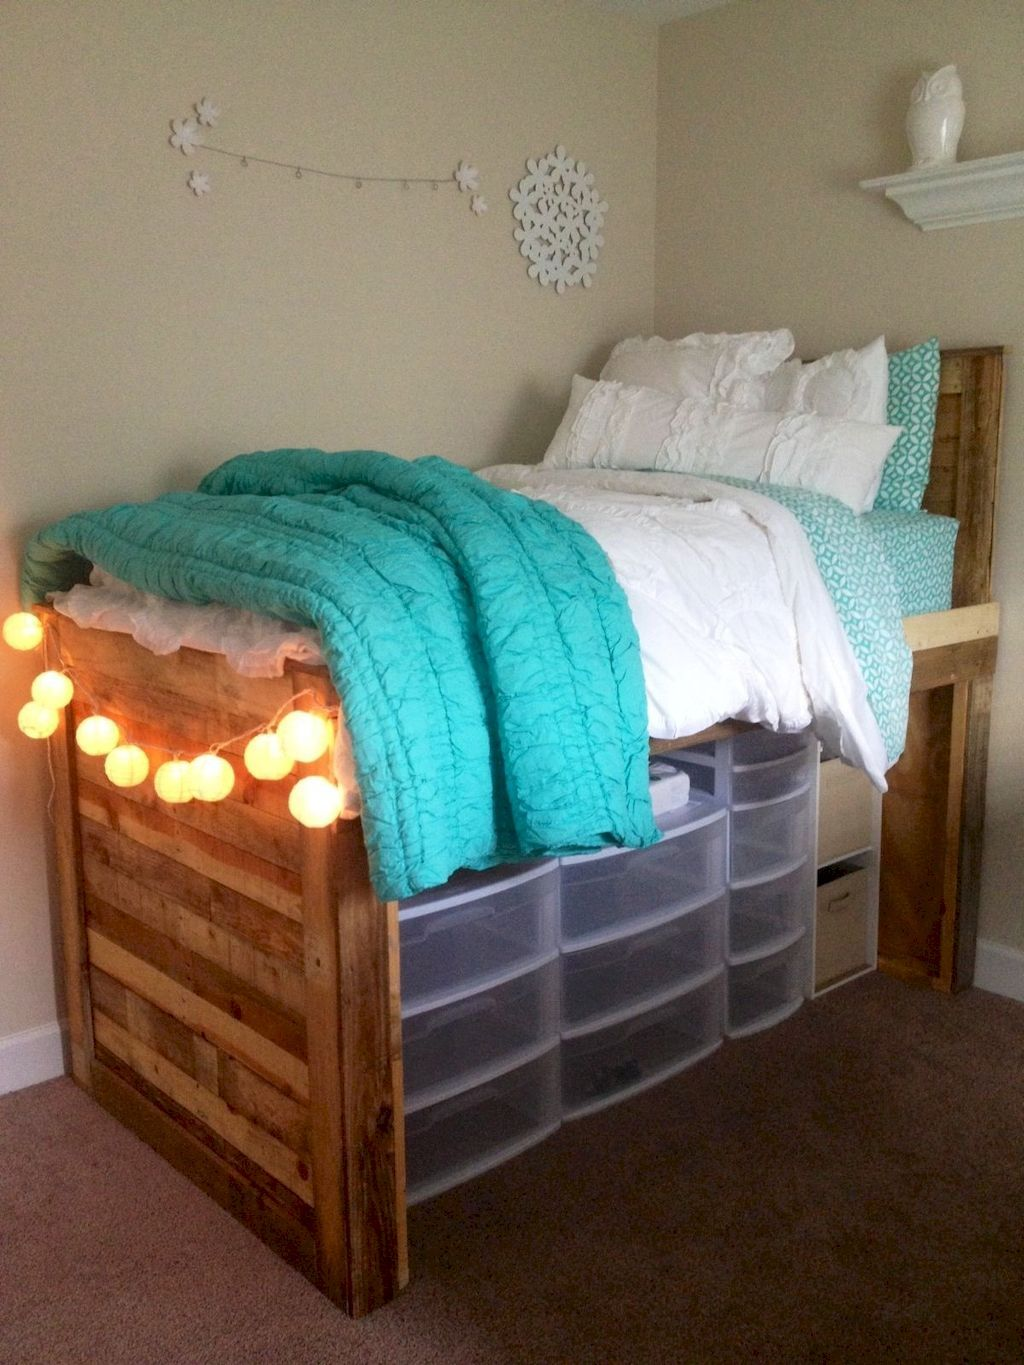 Insanely Bed Storage Ideas for Small Spaces  Bed storage